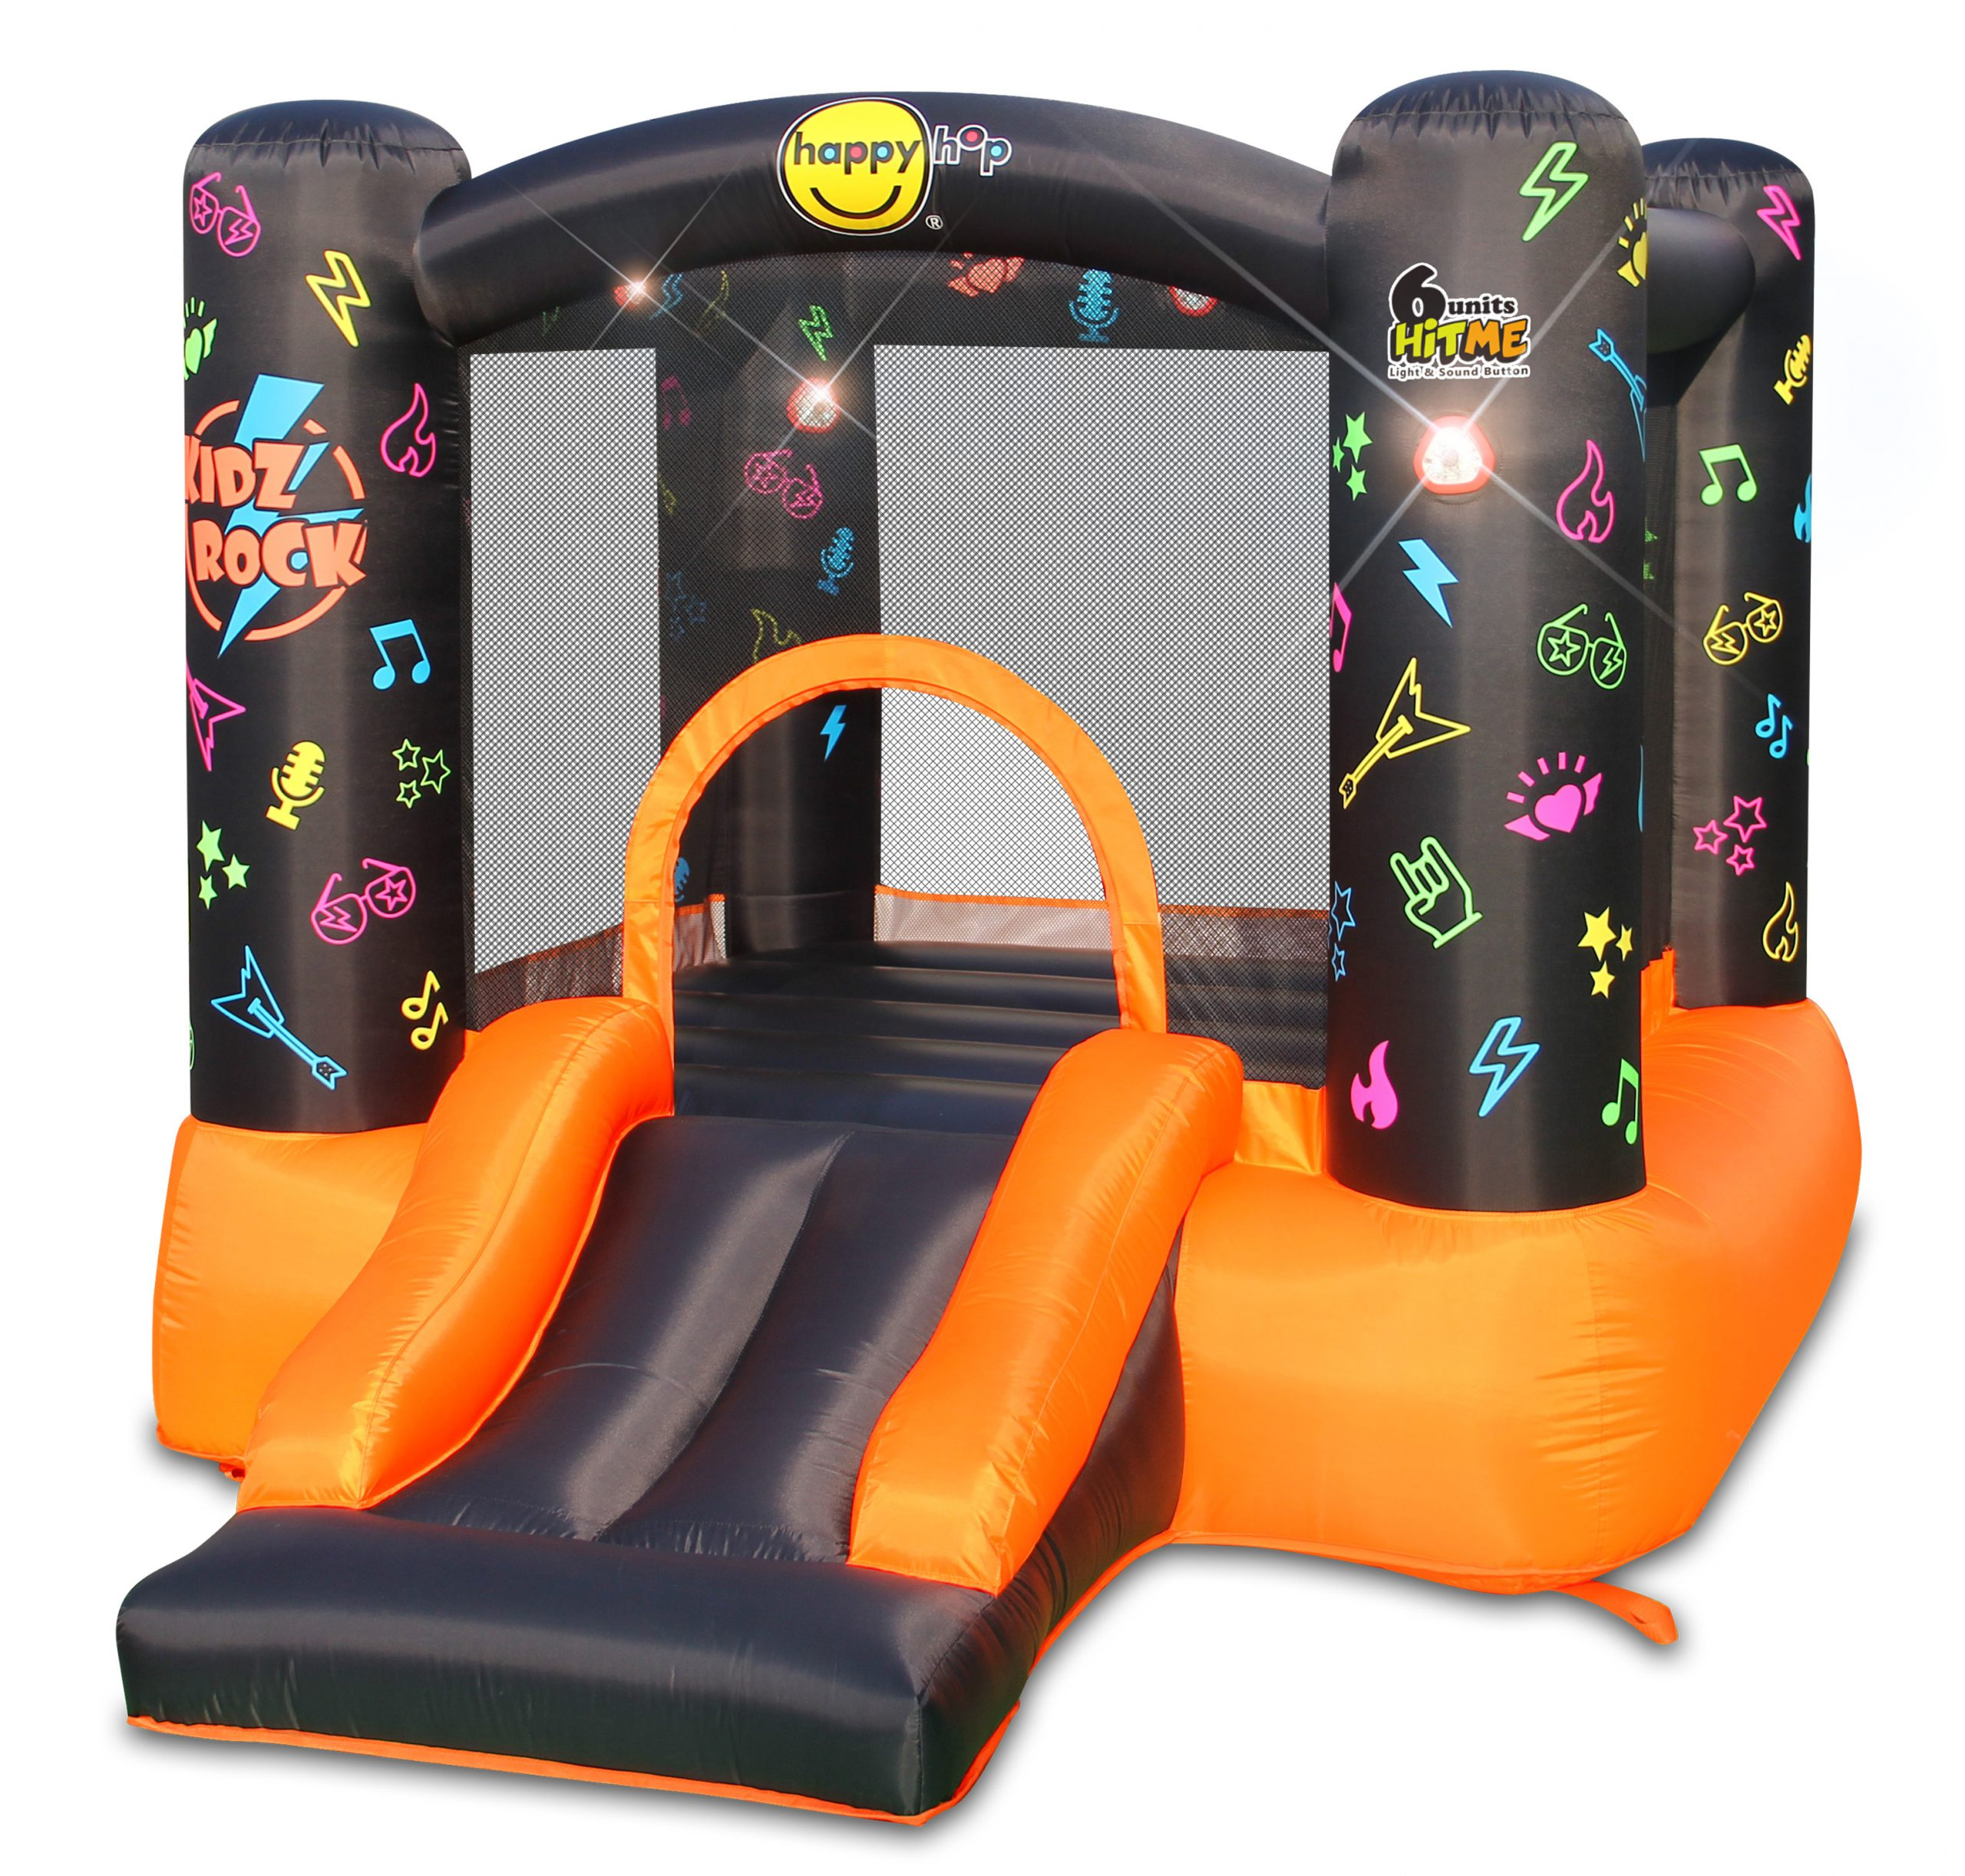 Bounce House - Kidz Rock Bounce House with Lights and Sound interaction